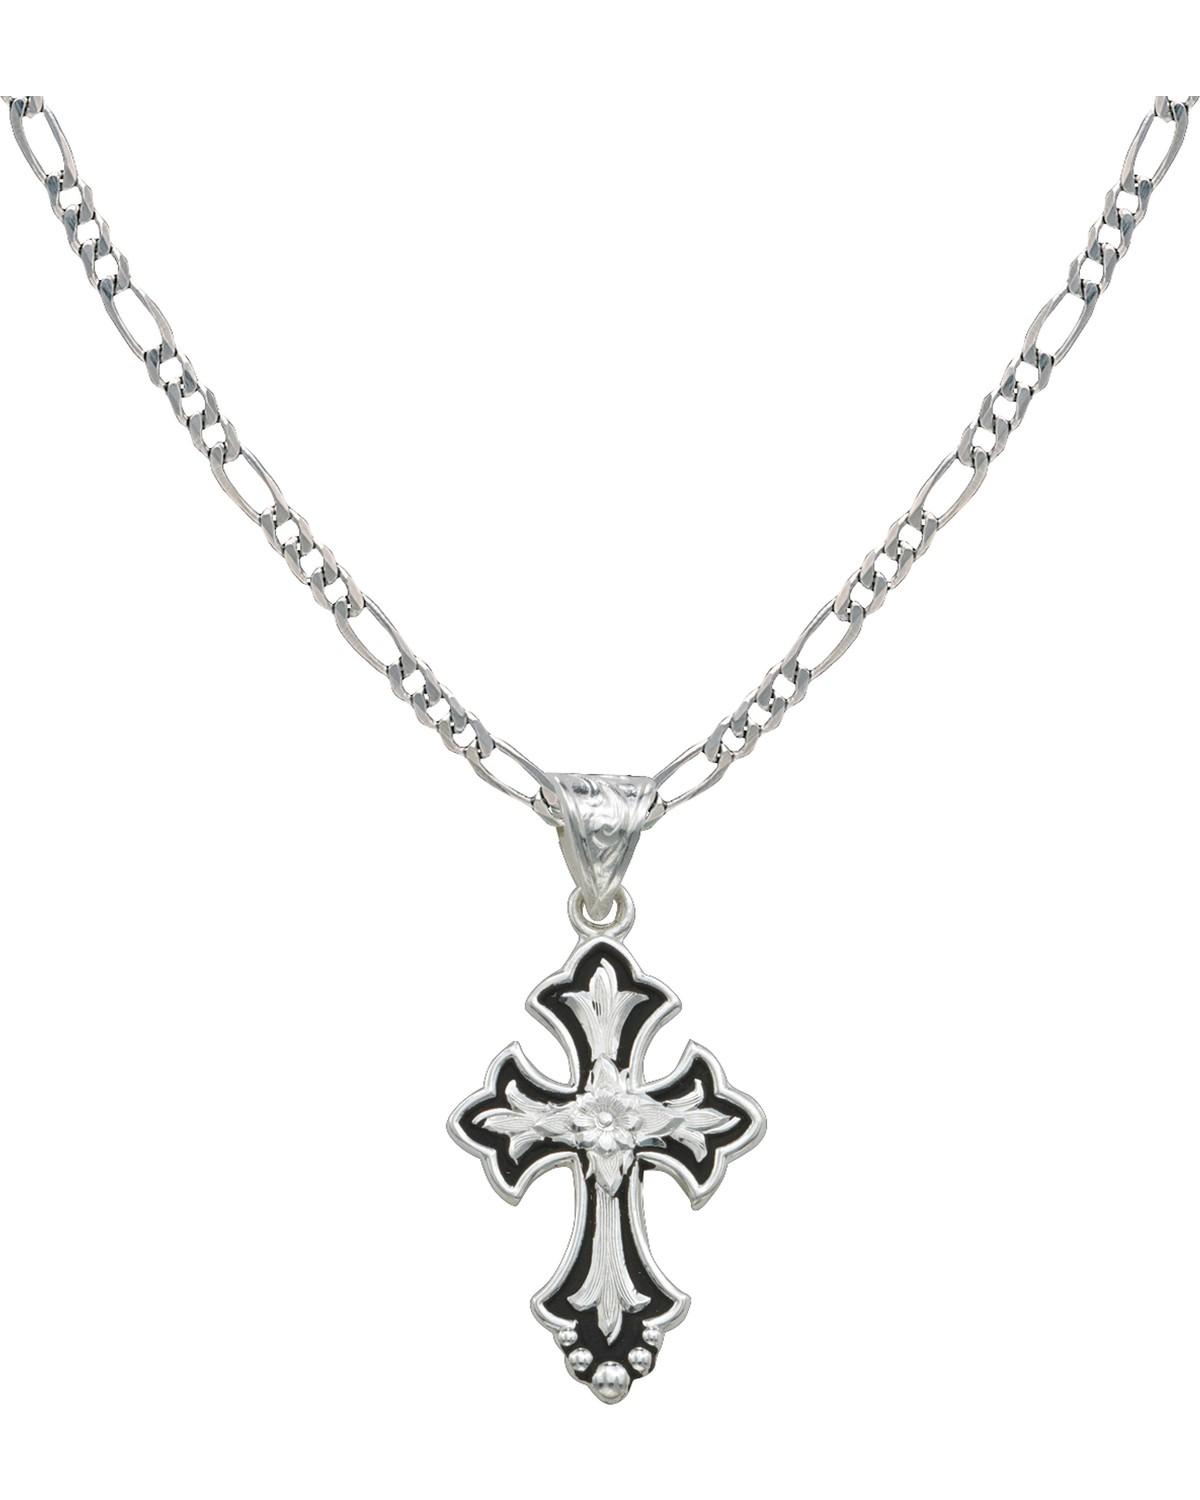 1200x1500 Montana Silversmiths Silver And Black Cross Necklace Boot Barn